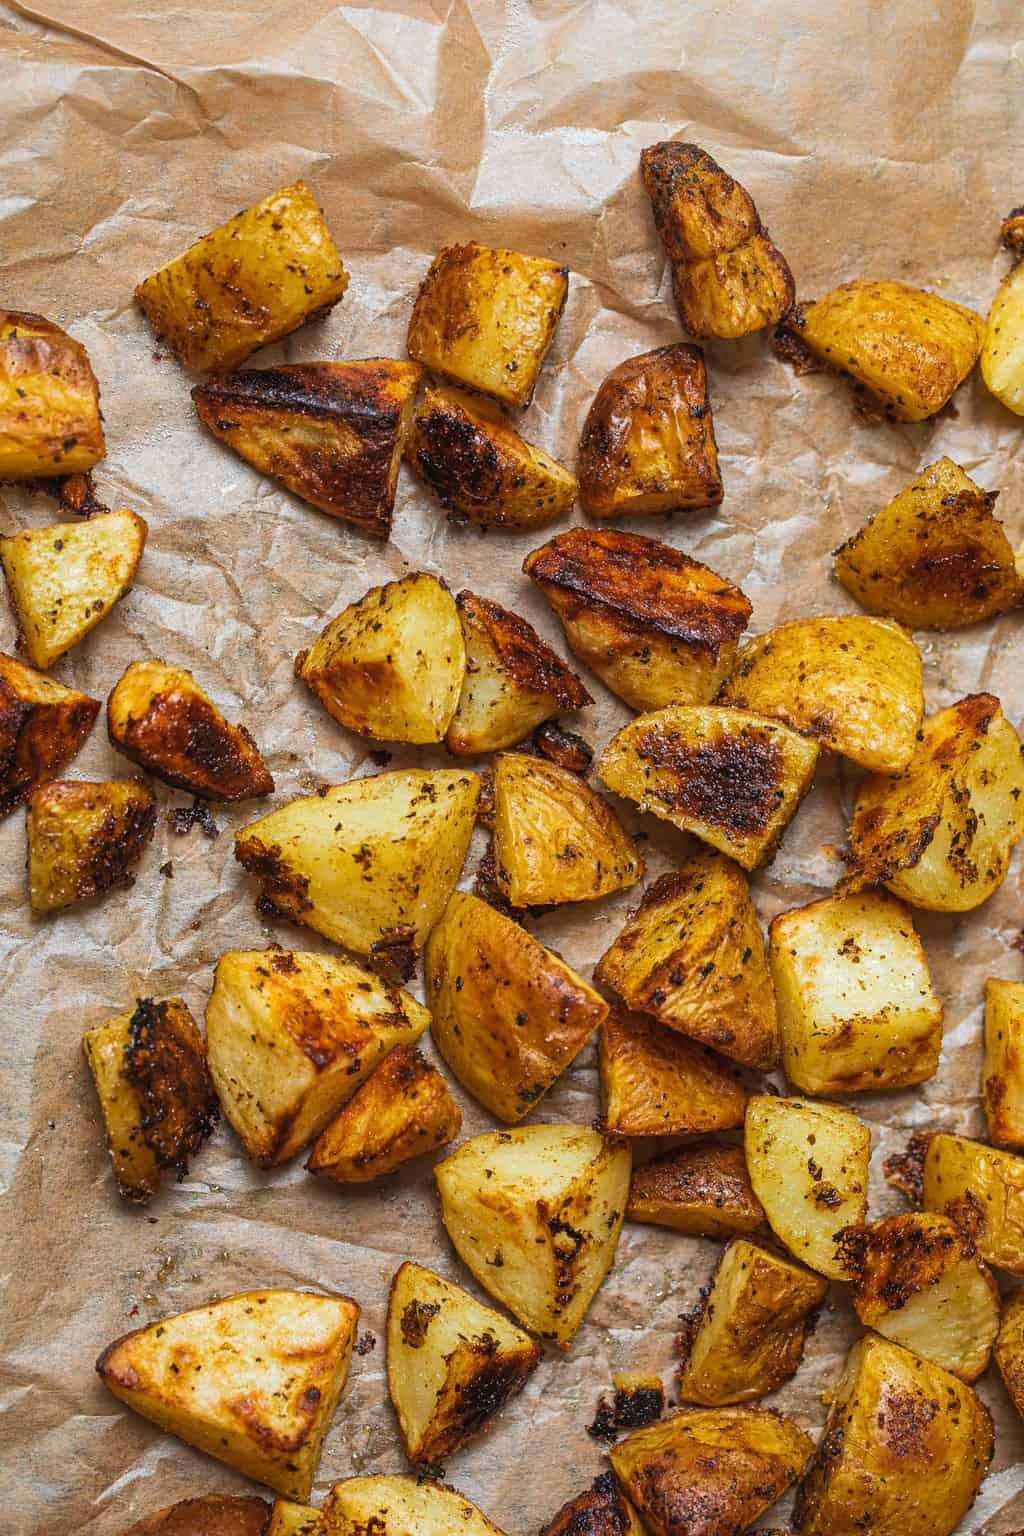 Vegan roast potatoes on a baking sheet